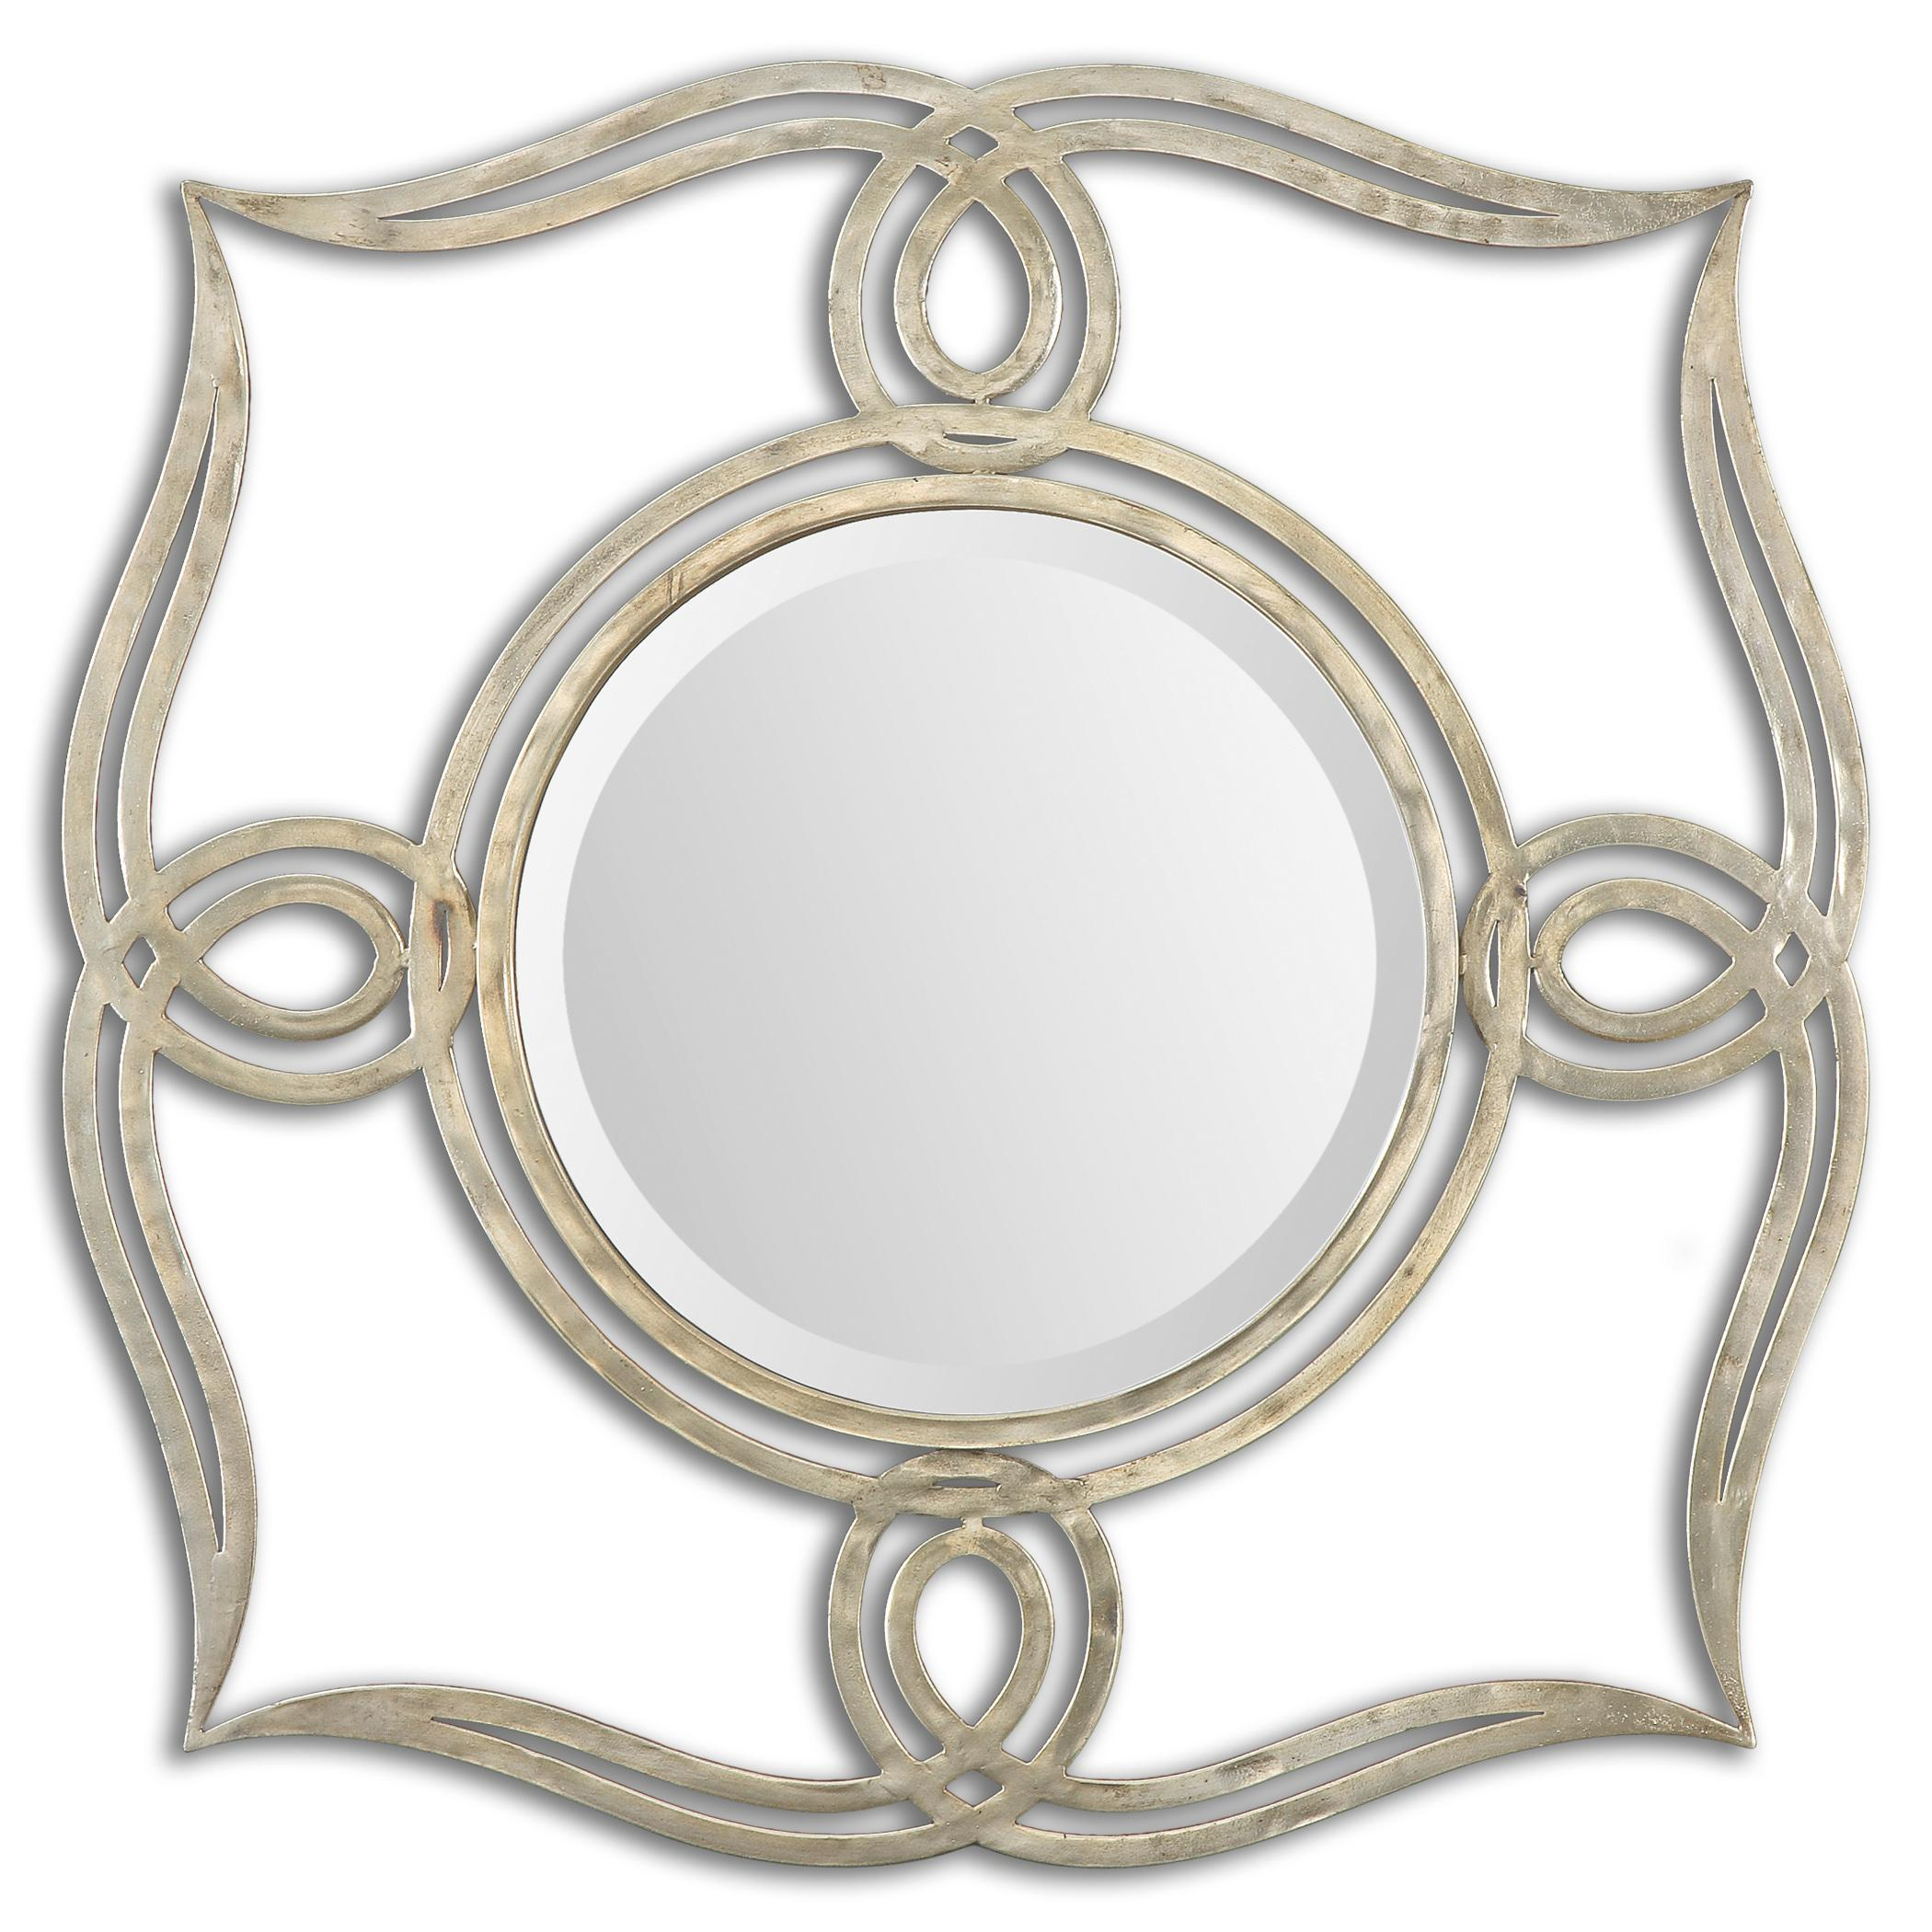 Uttermost Mirrors Helena Silver Mirror - Item Number: 12889